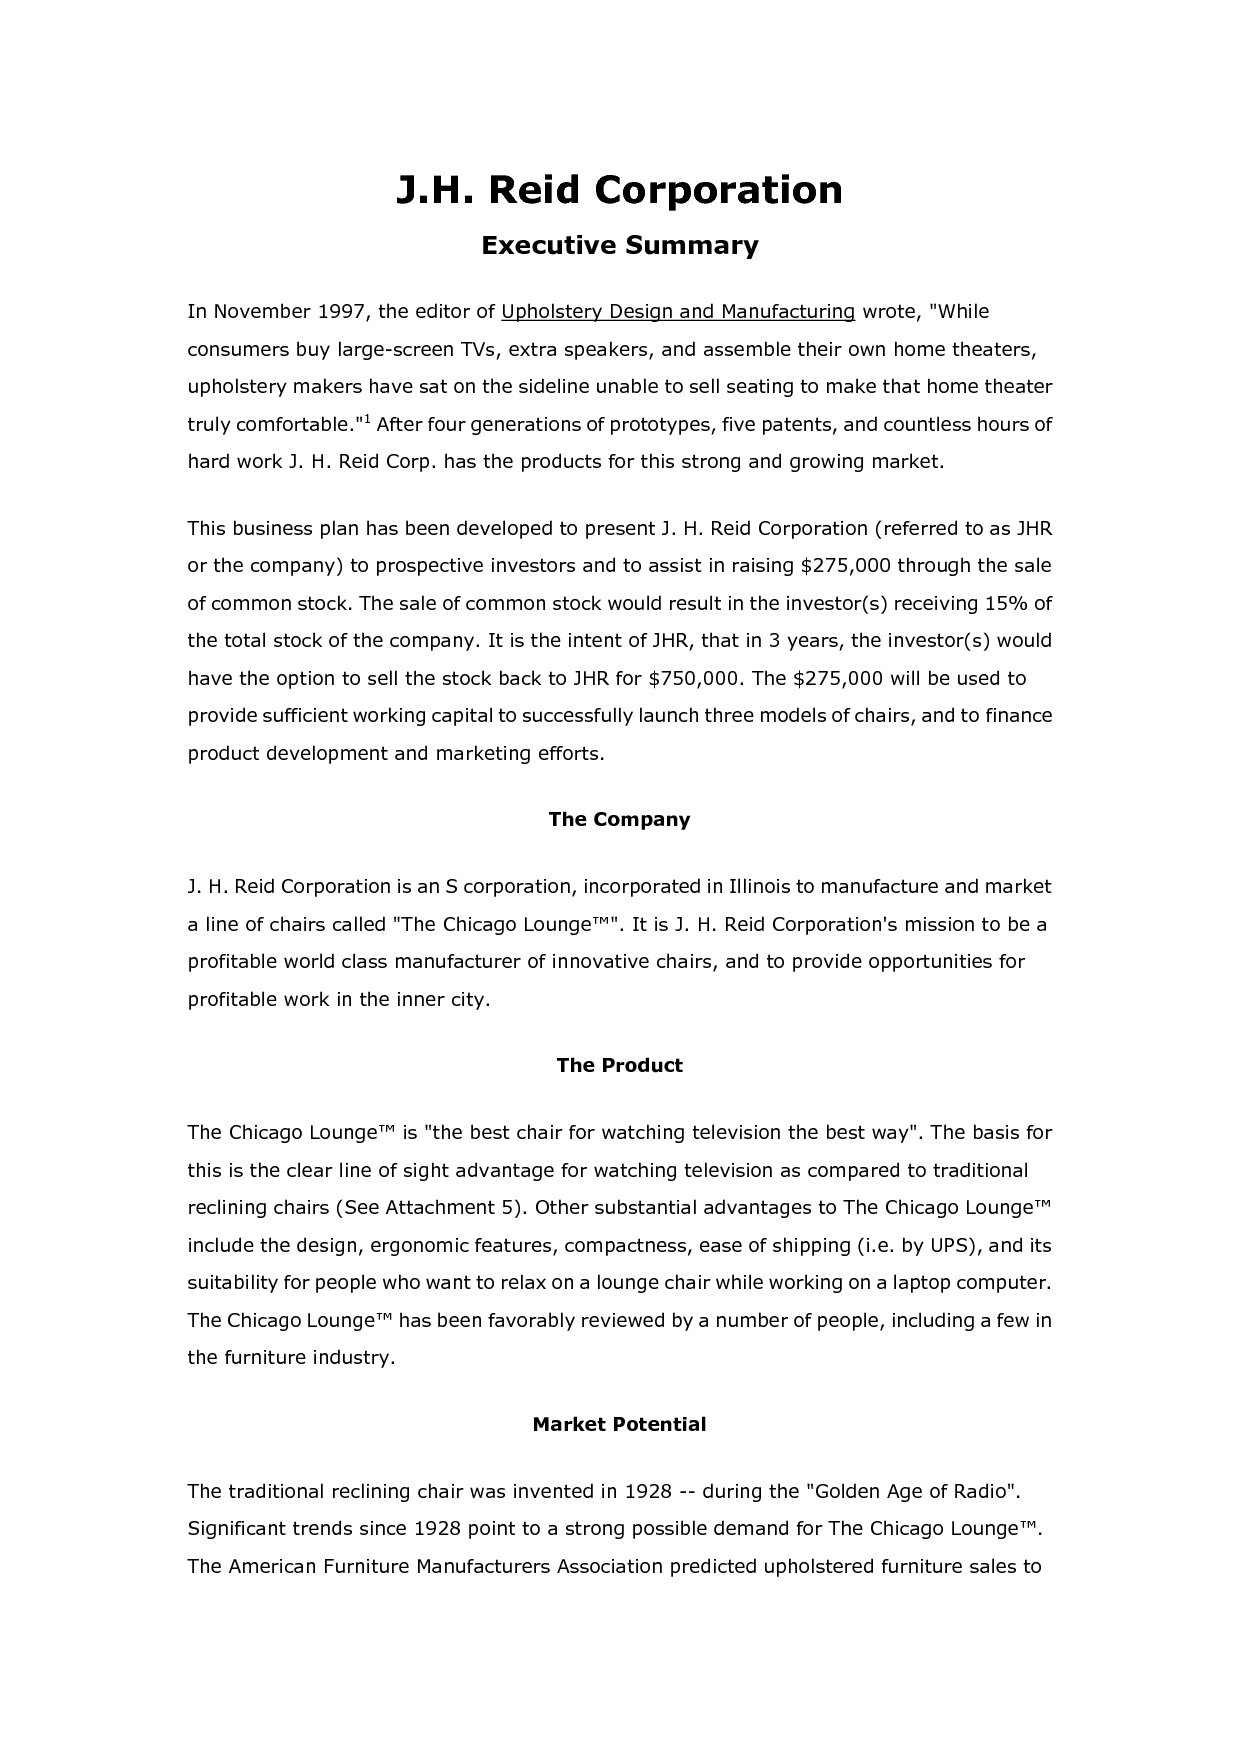 examples of a proposal essayproposal essays modest proposal essay examples essay proposal template essay proposal template - Modest Proposal Essay Examples